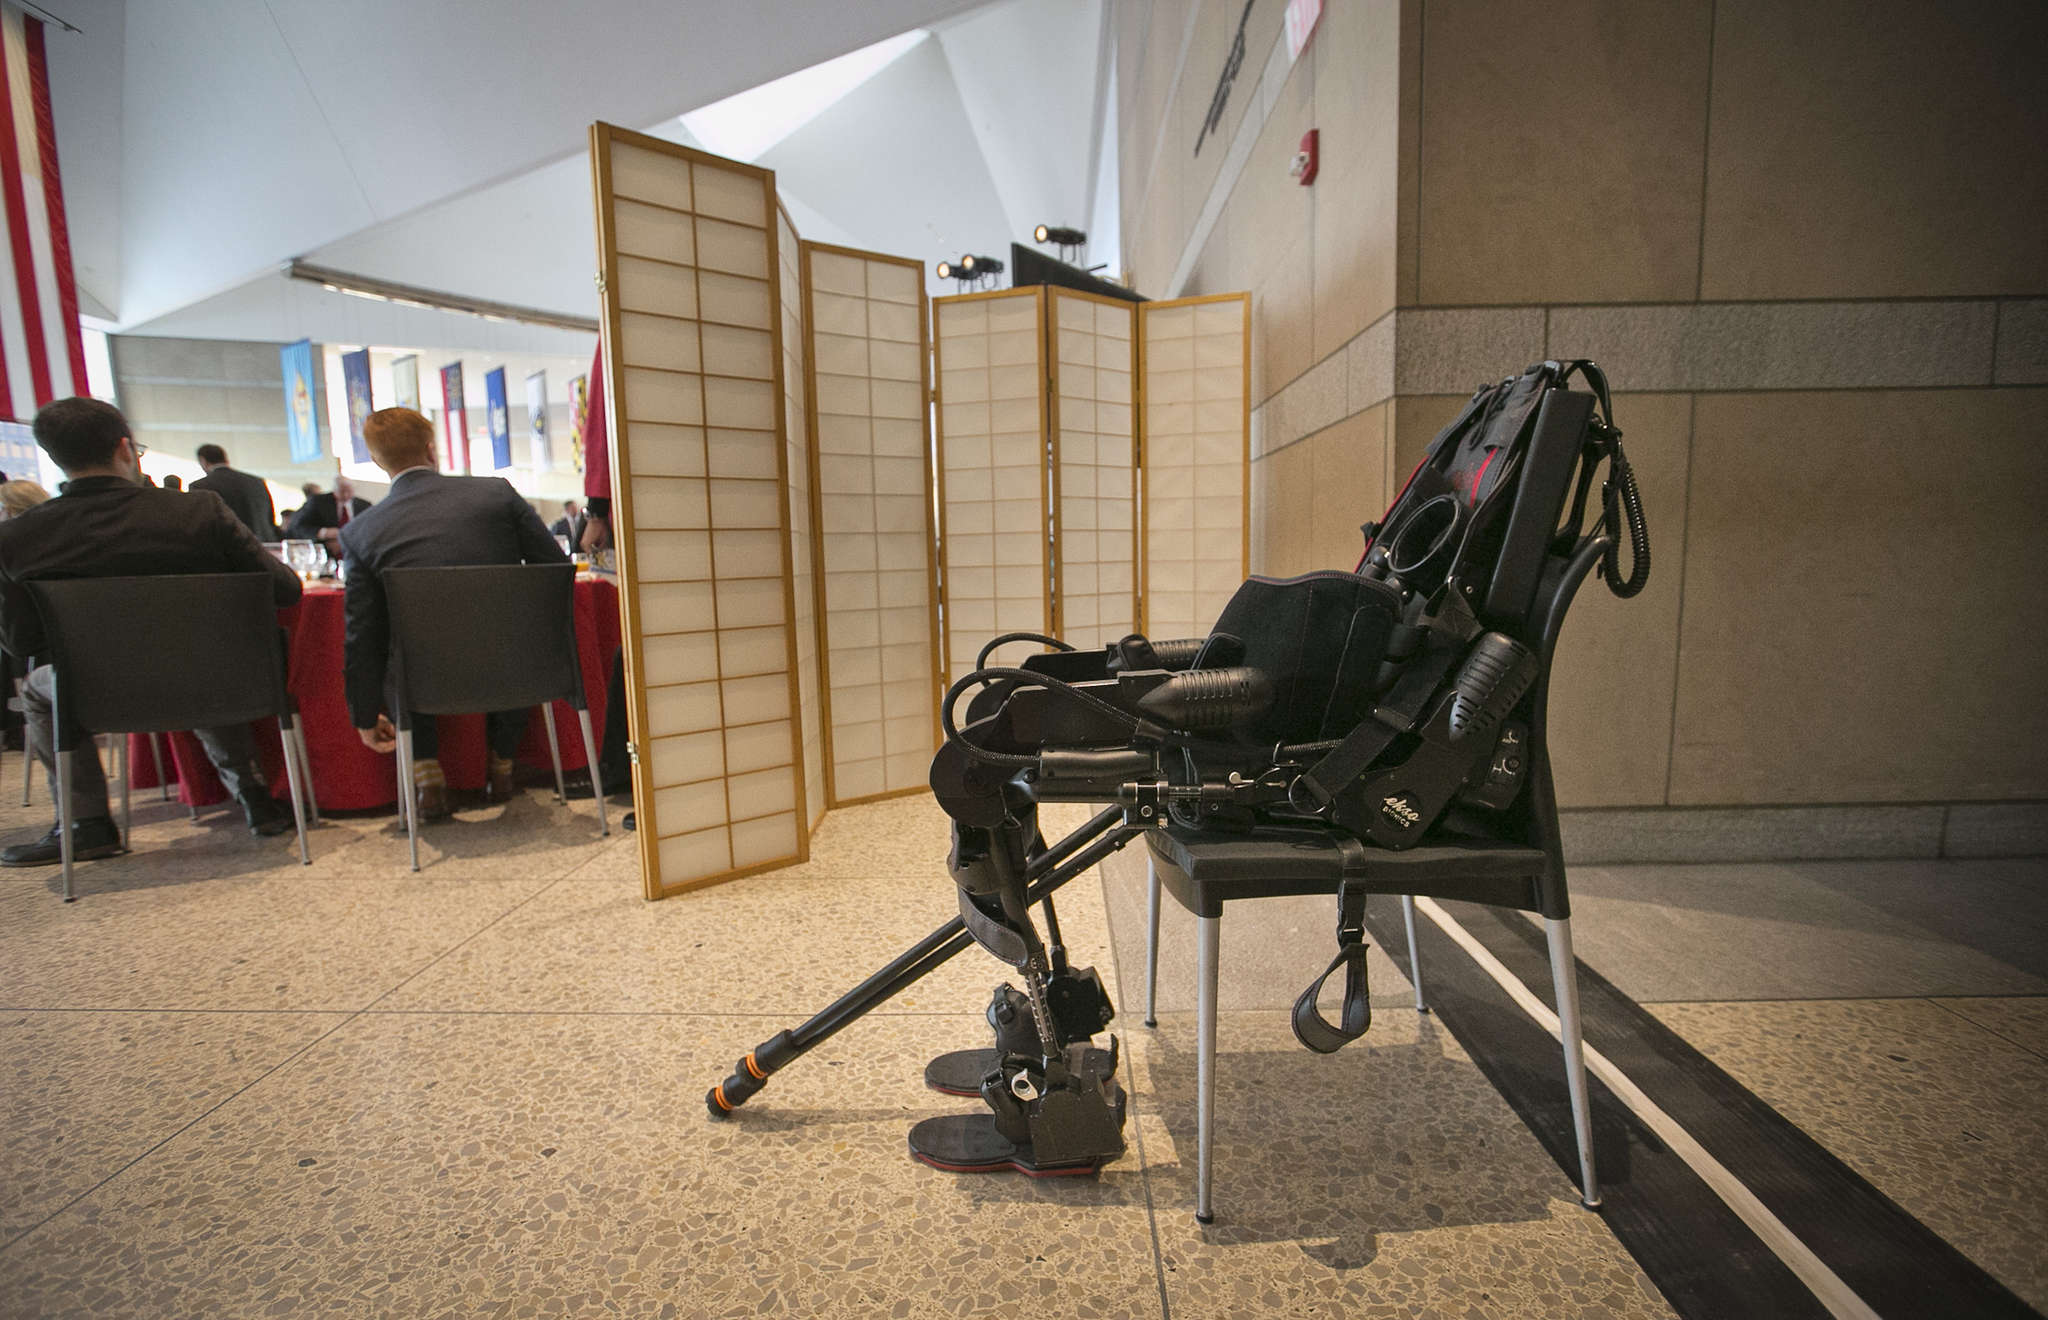 An exoskeleton suit sits in a chair waiting for Sgt. Dan Rose, who was paralyzed while serving in Afghanistan, to demonstrate its use.